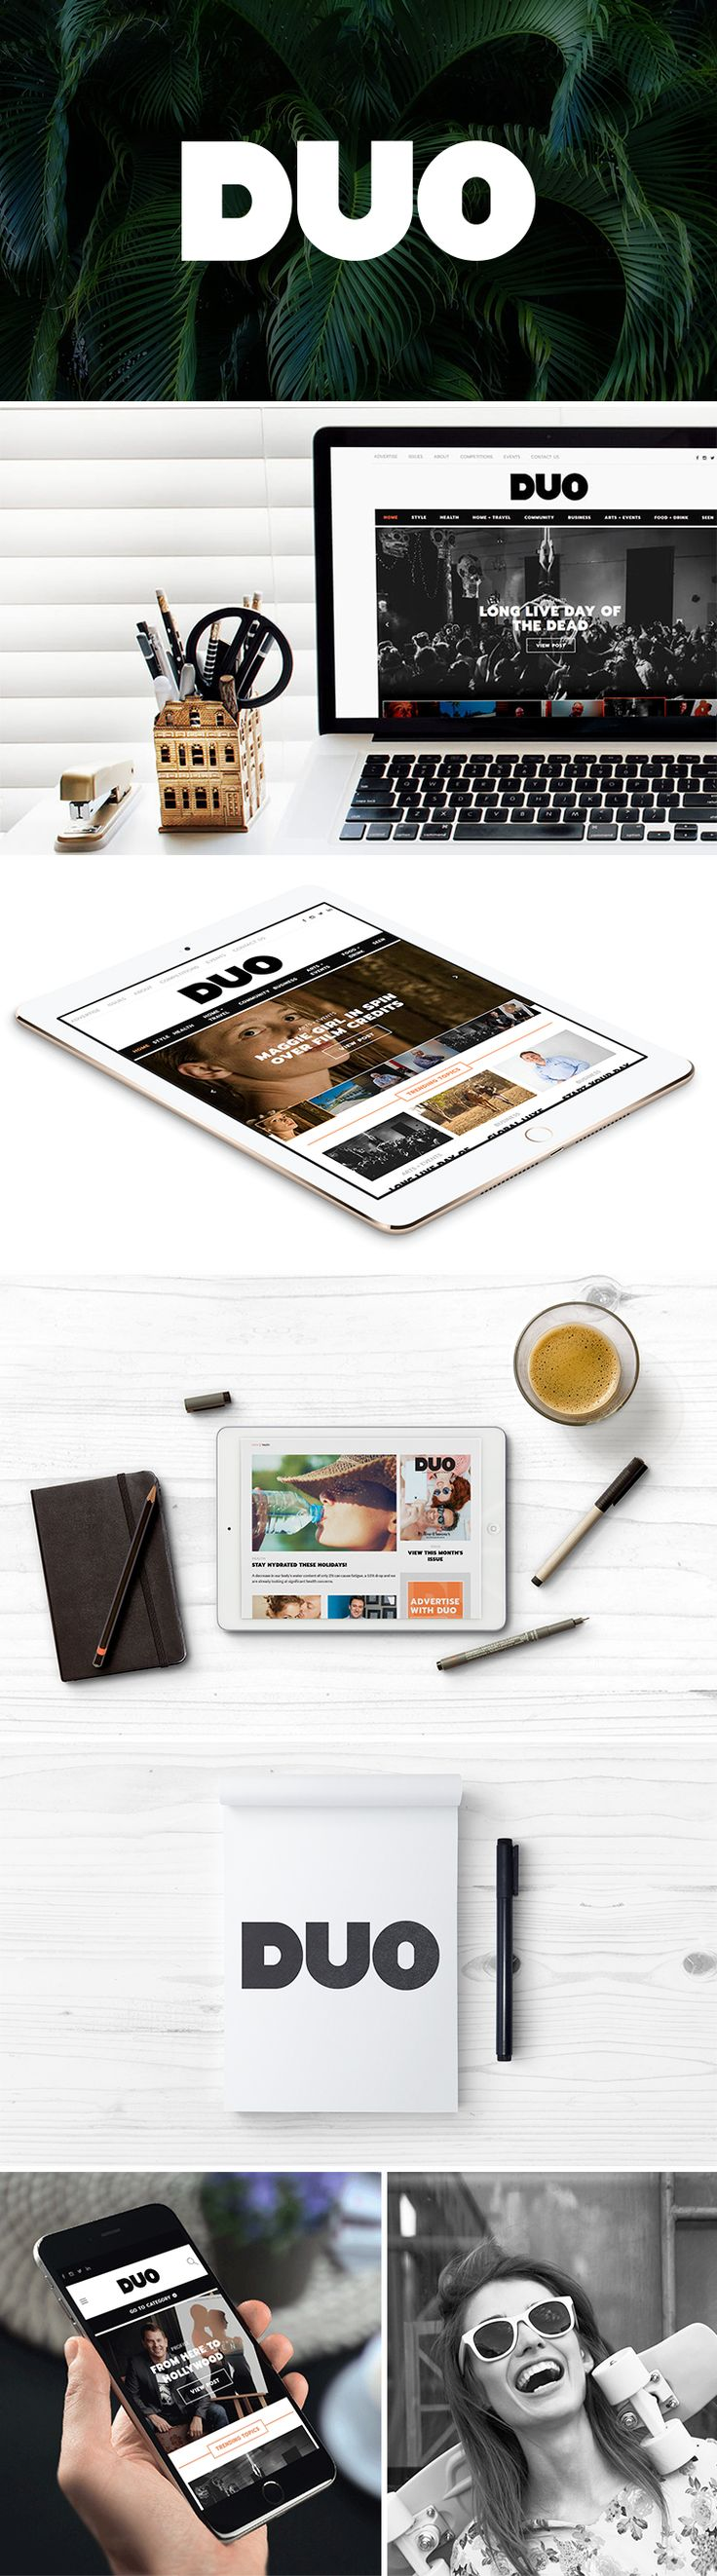 As one of the most-read lifestyle magazines in Townsville, Duo Magazine needed a digital presence that would strengthen its brand and a new website that would mirror the quality of the printed publication. | #logo #website #DUO #design